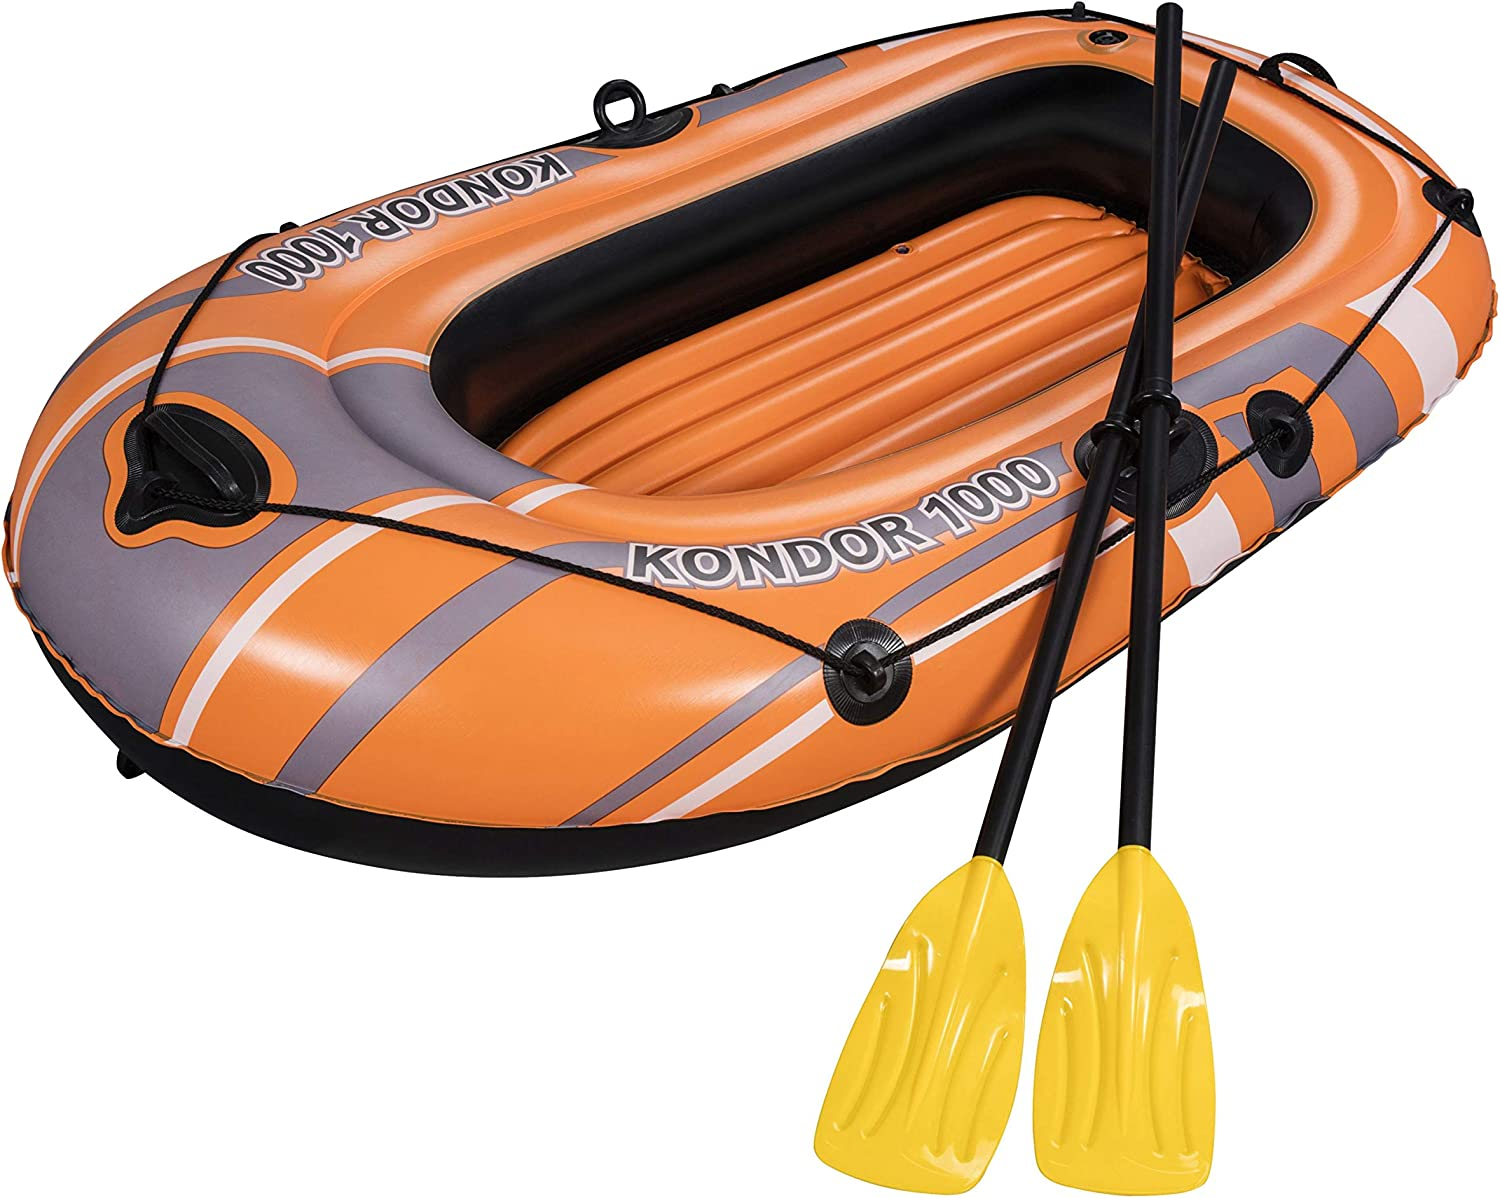 Barca Hinchable Bestway Hydro-Force Kondor 1000 Set